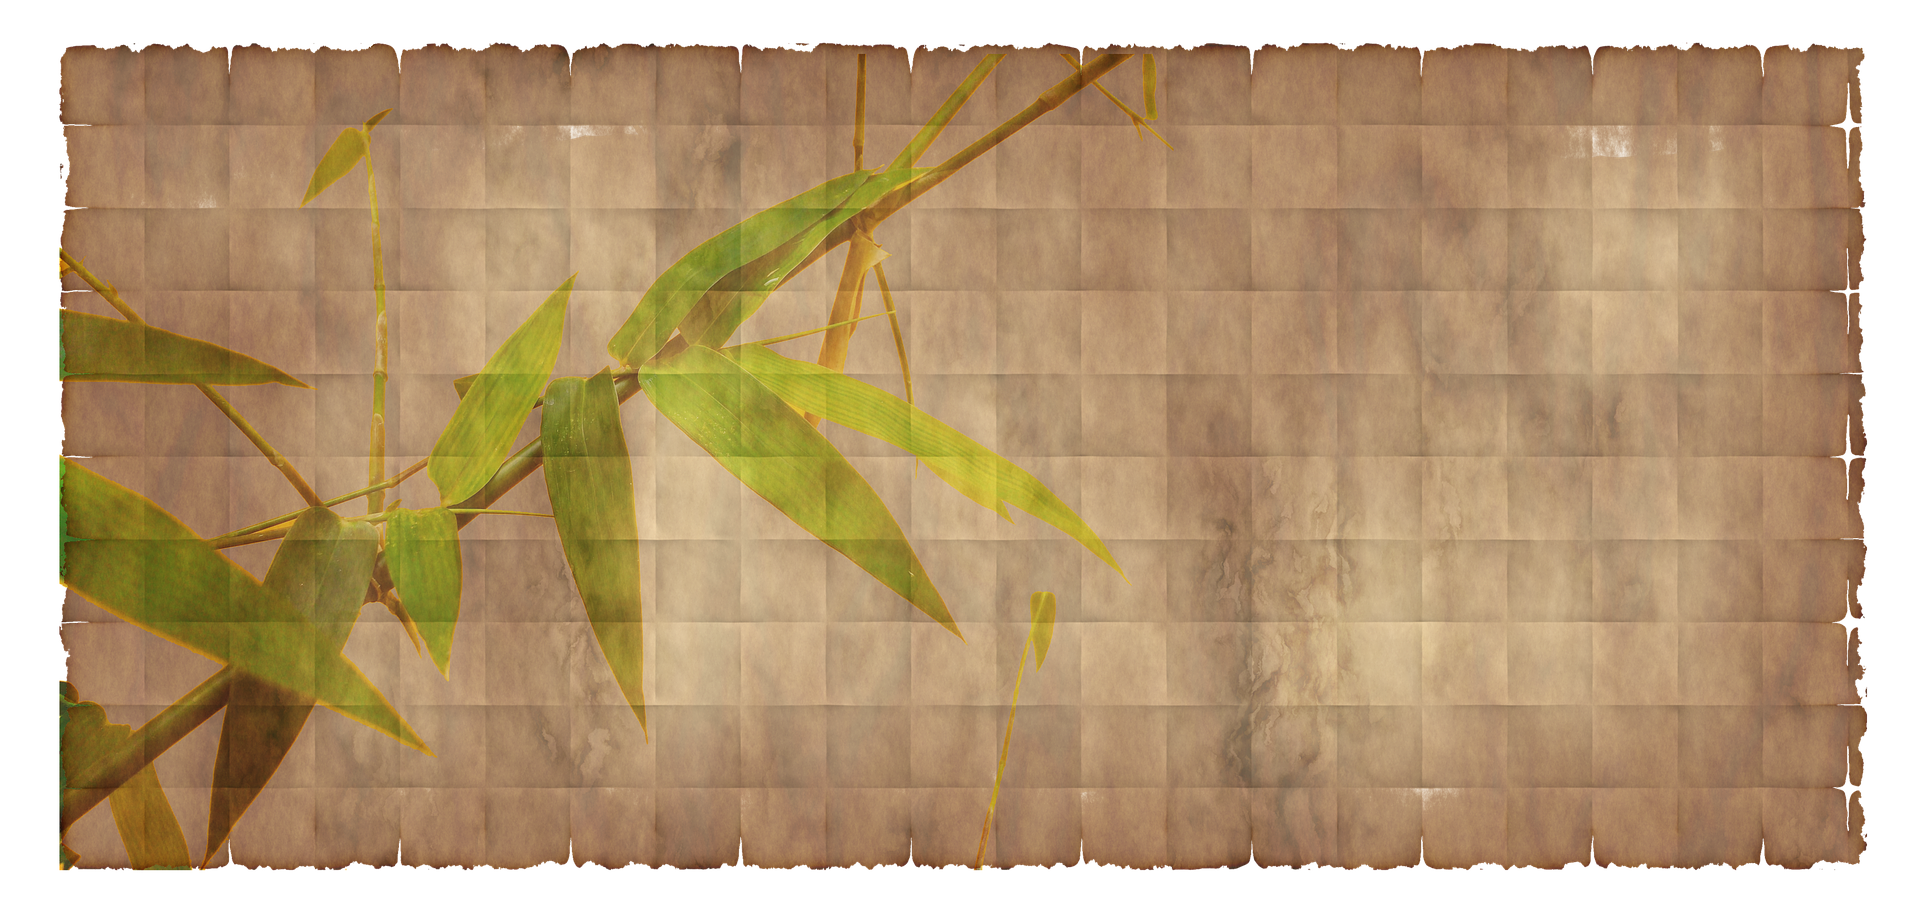 Bamboo texture png. The superiority of fibre